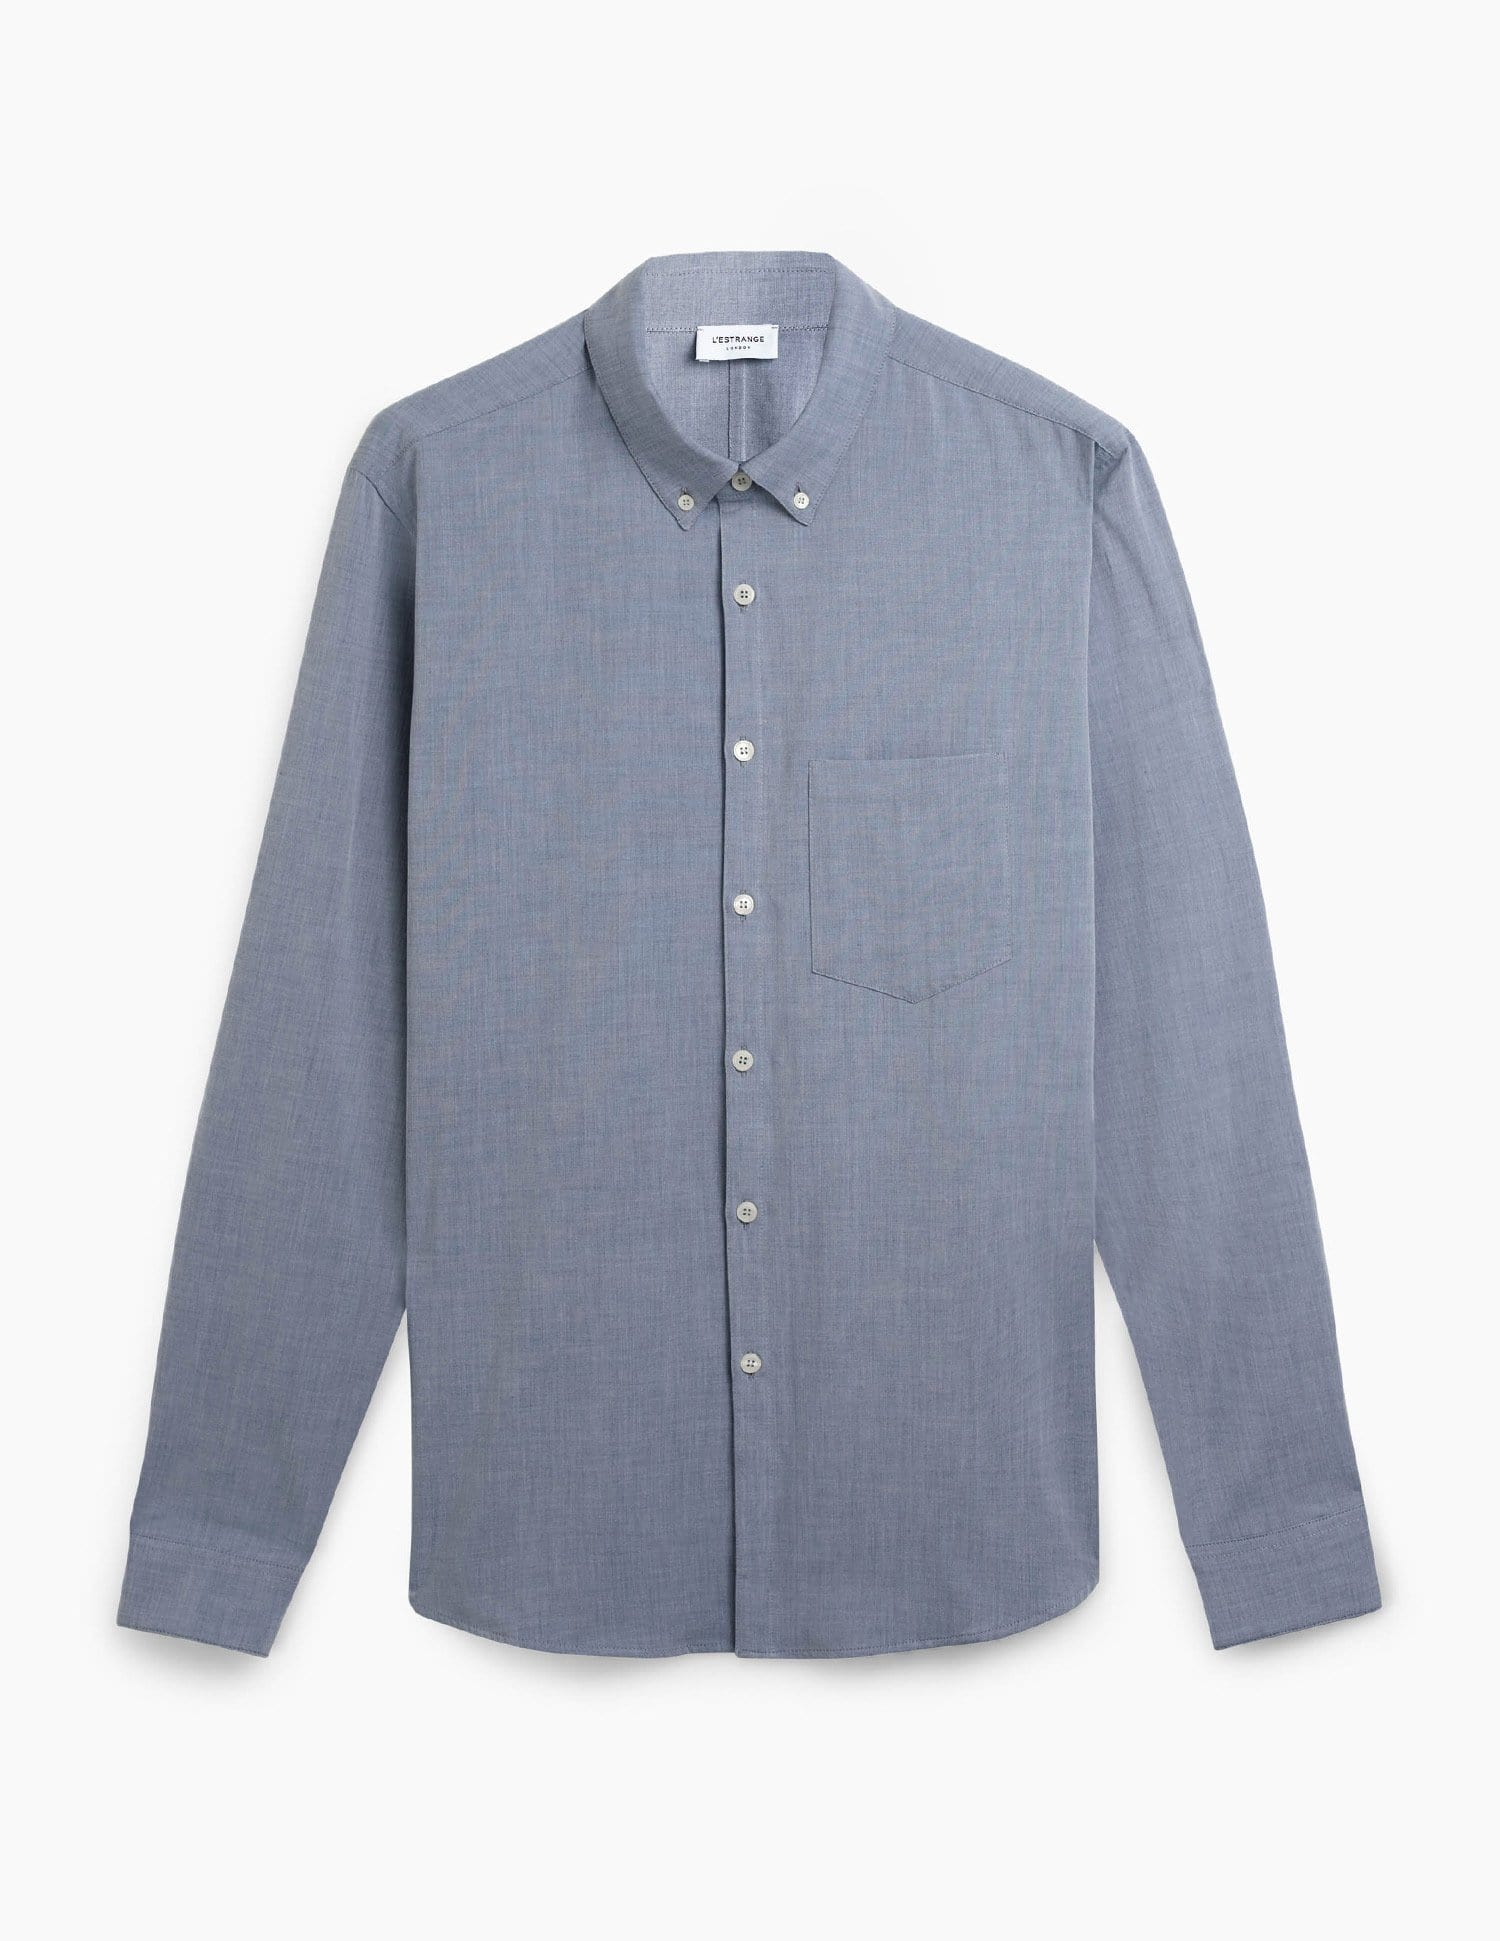 The All Day Shirt || Navy-Chambray | Collared